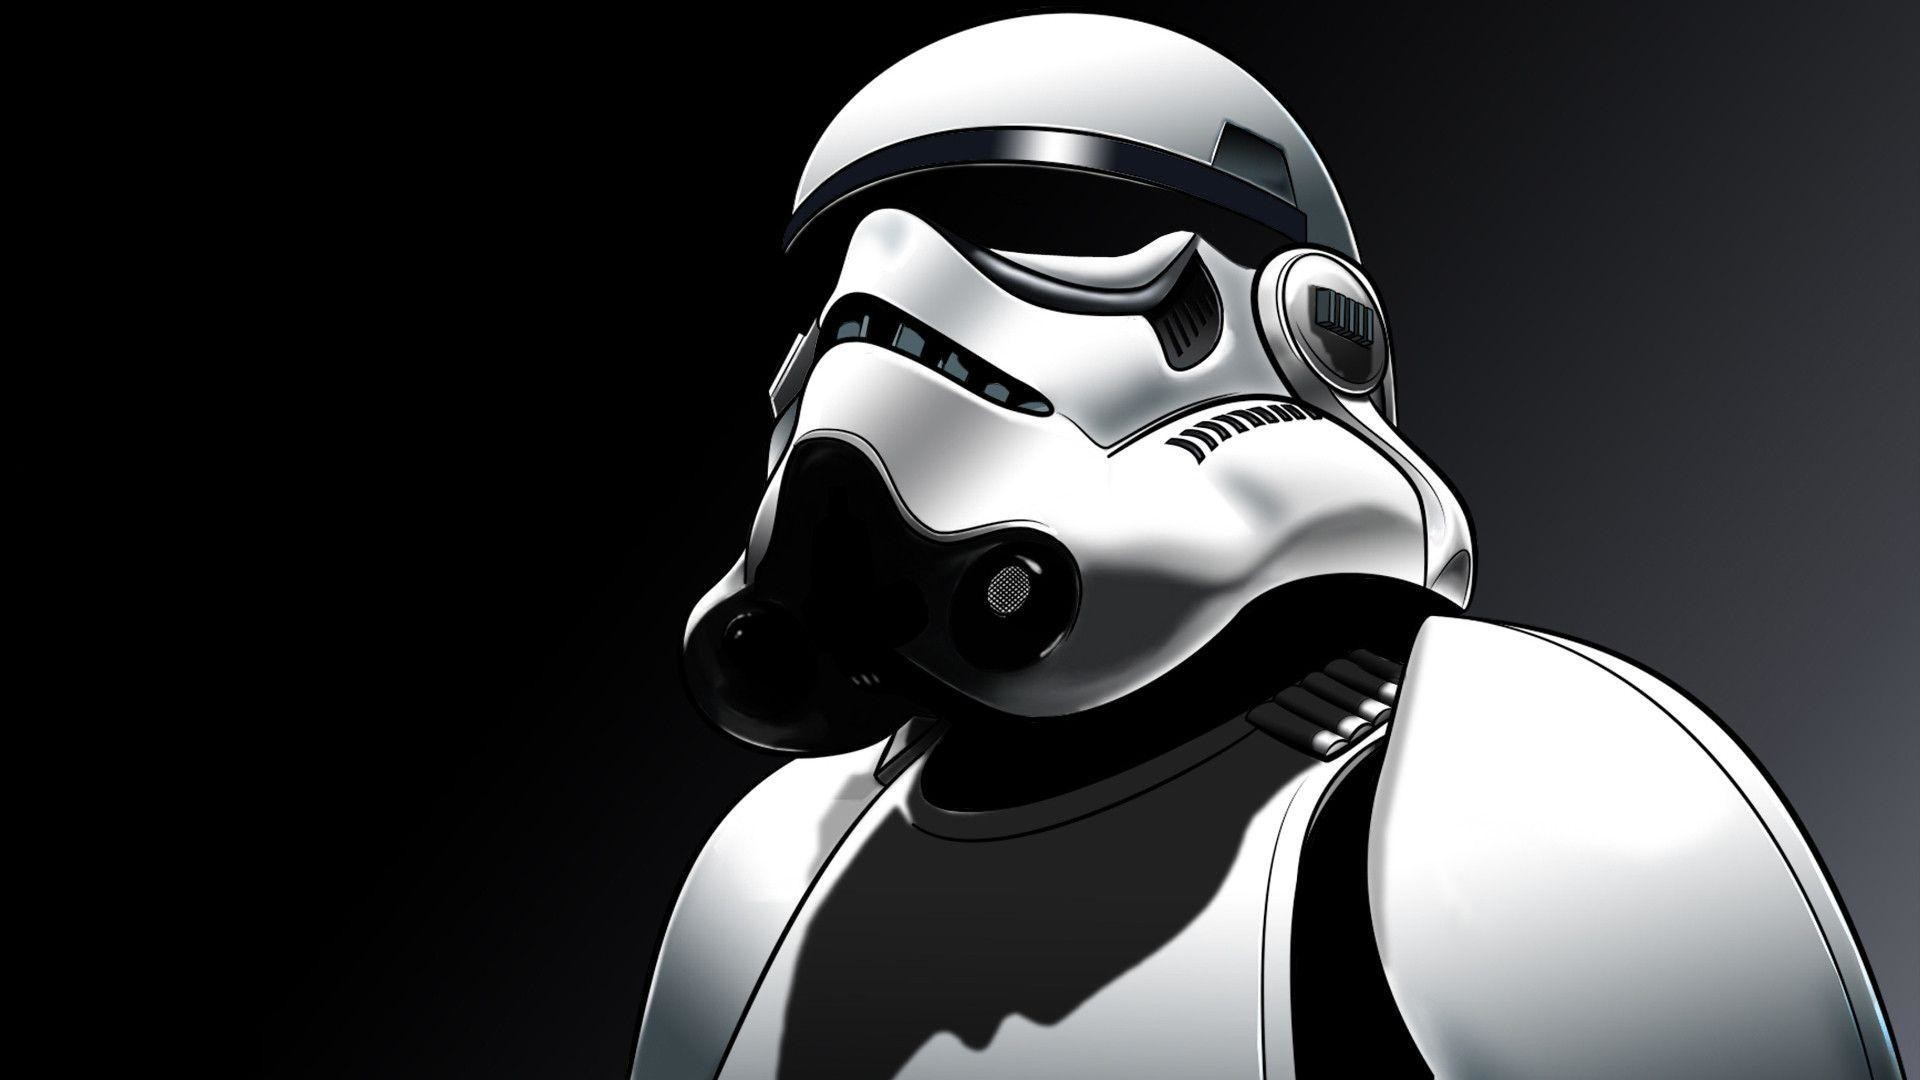 Cool star wars wallpapers hd 68 images - Star wars cool backgrounds ...